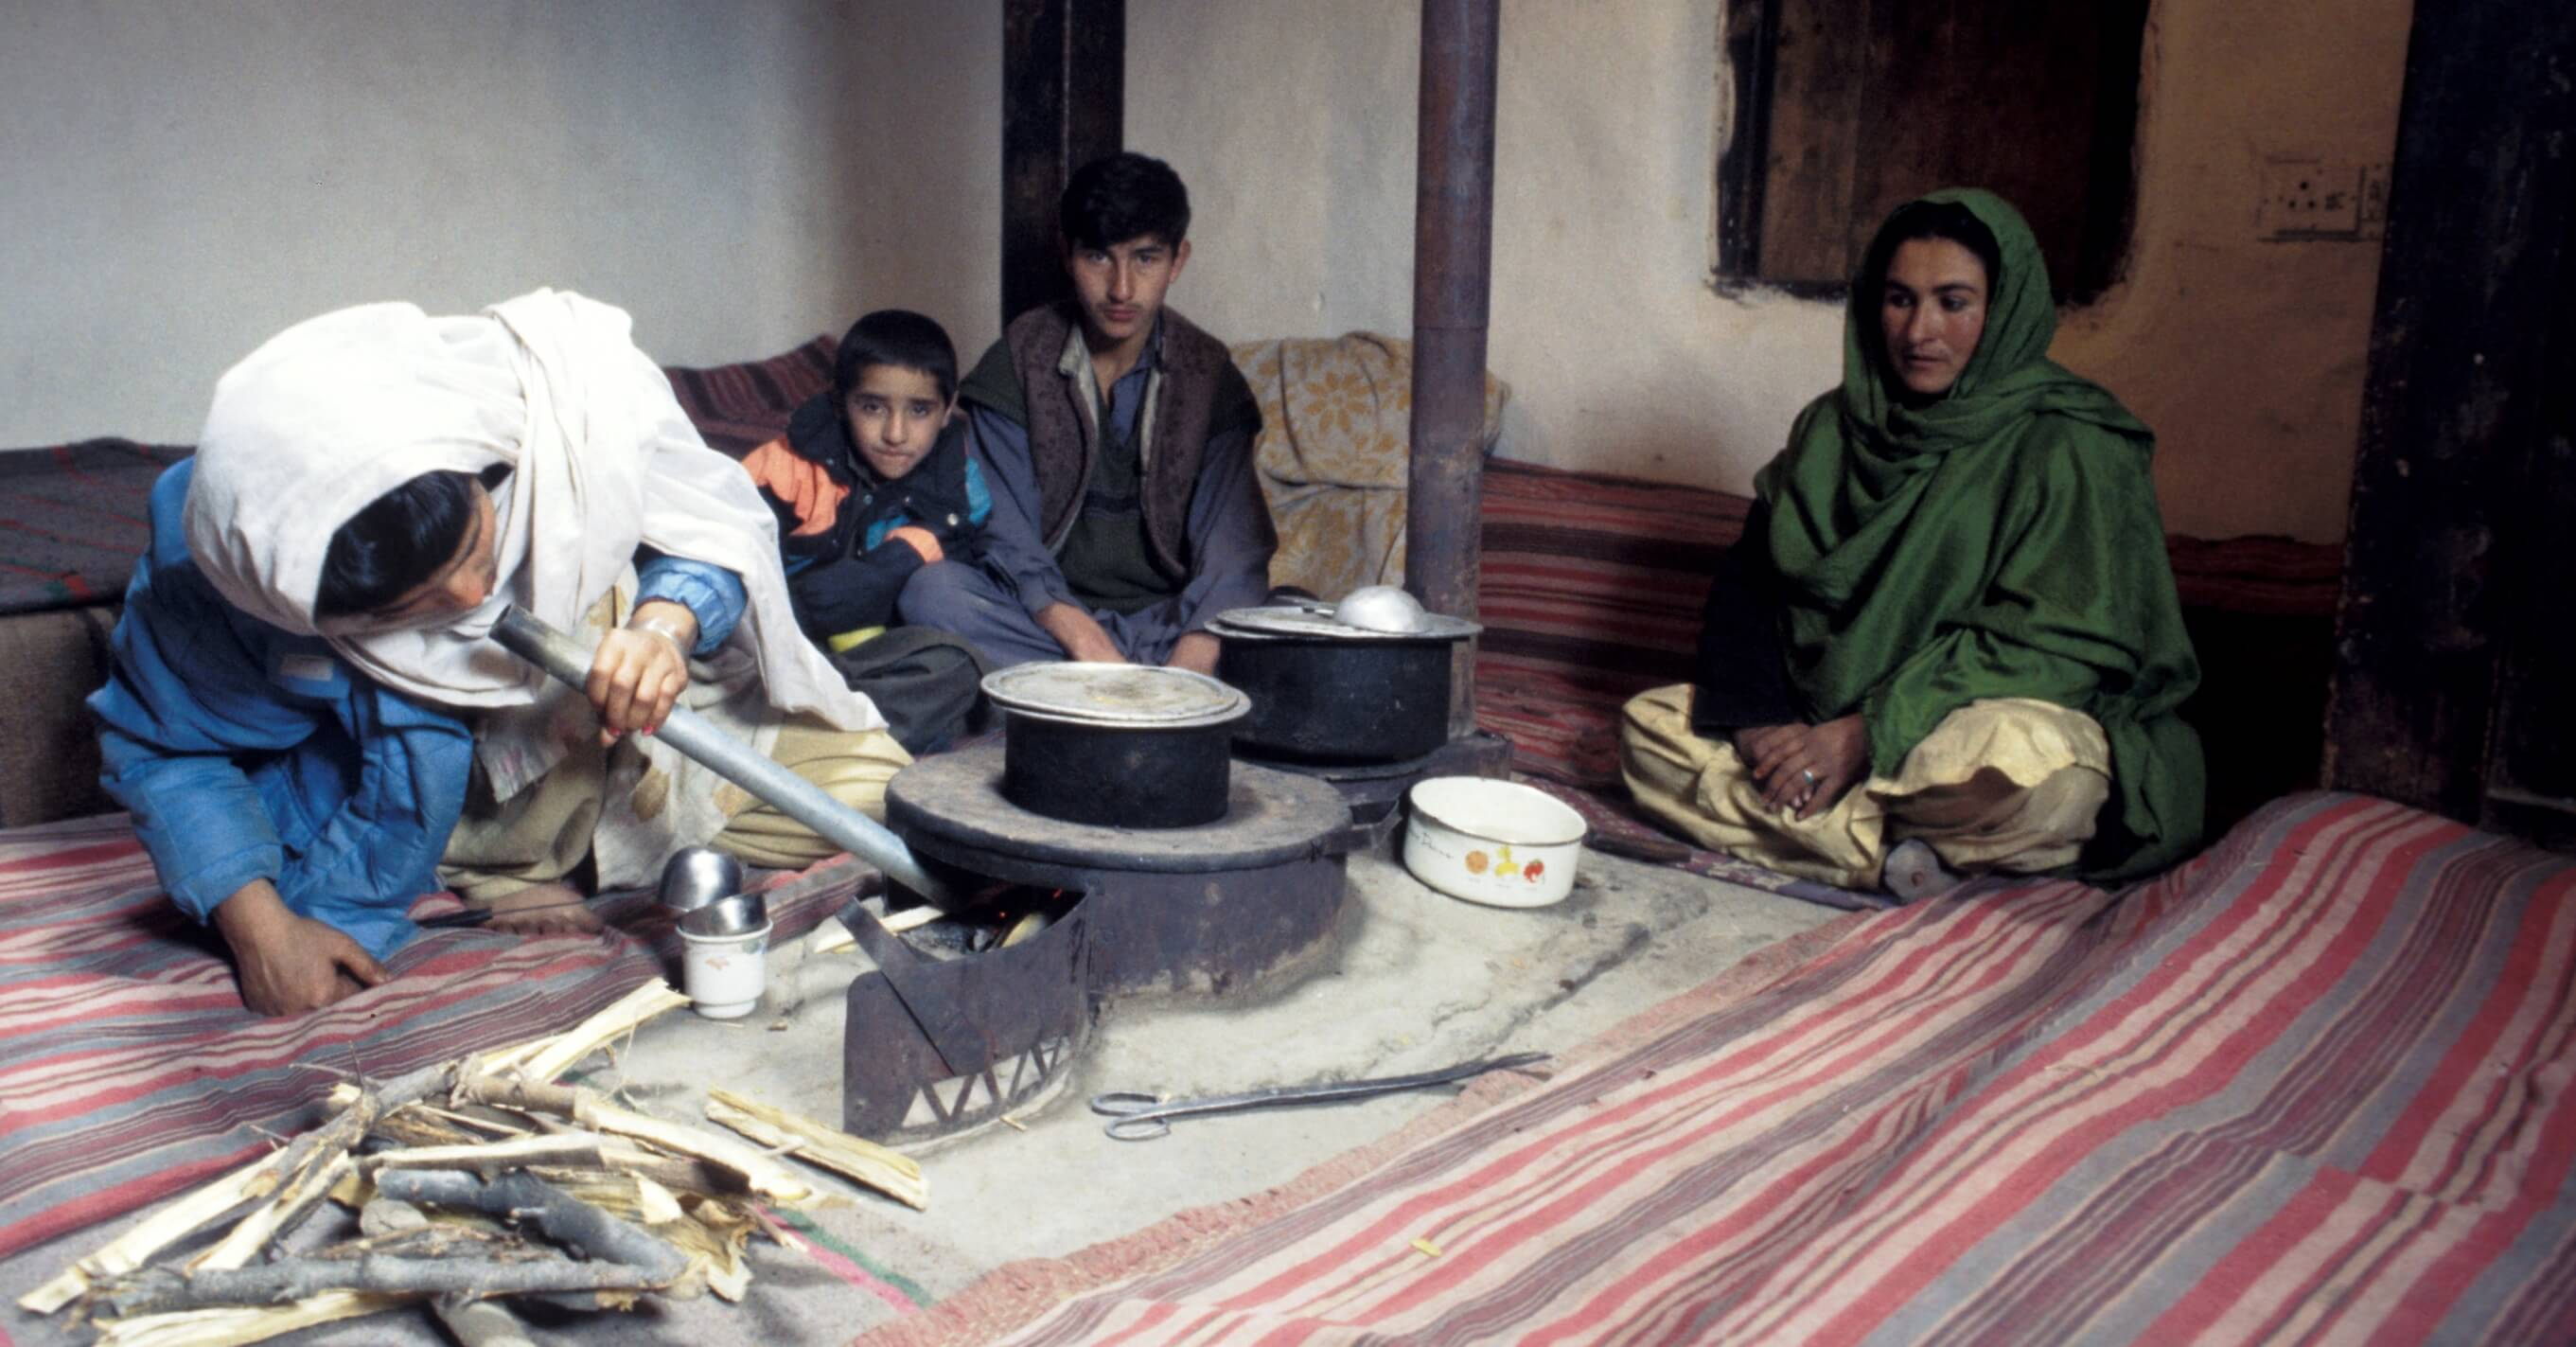 A family using their new environmentally friendly stove in Pakistan